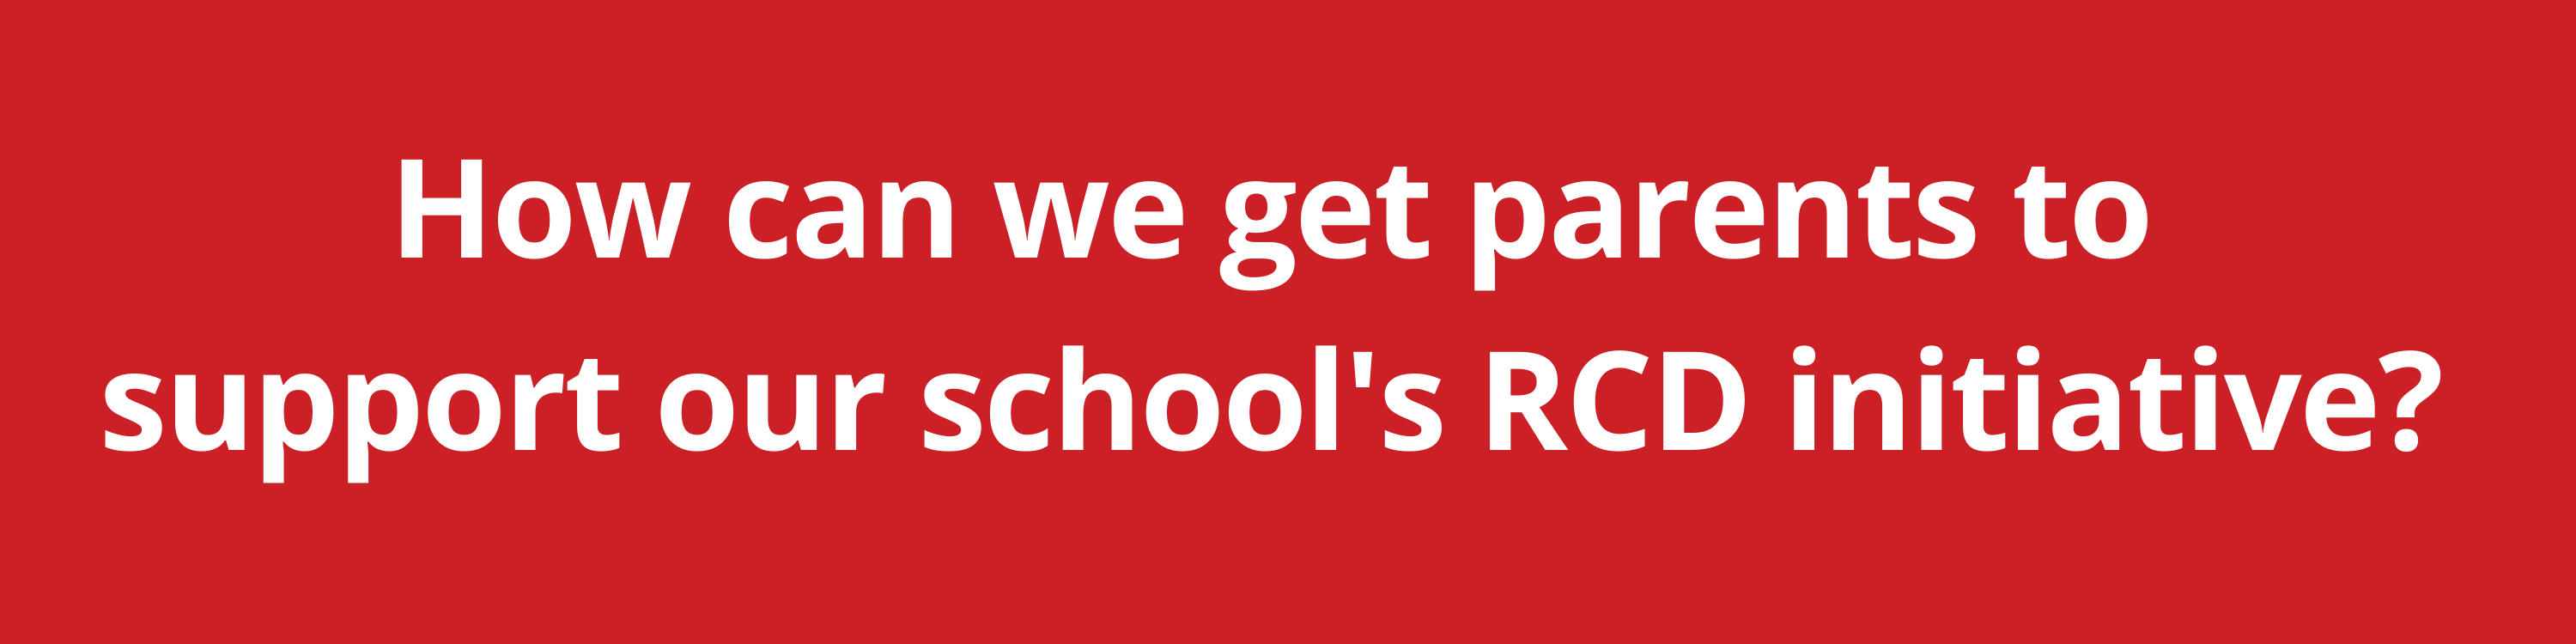 How can we get parents to support our school's RCD initiative?